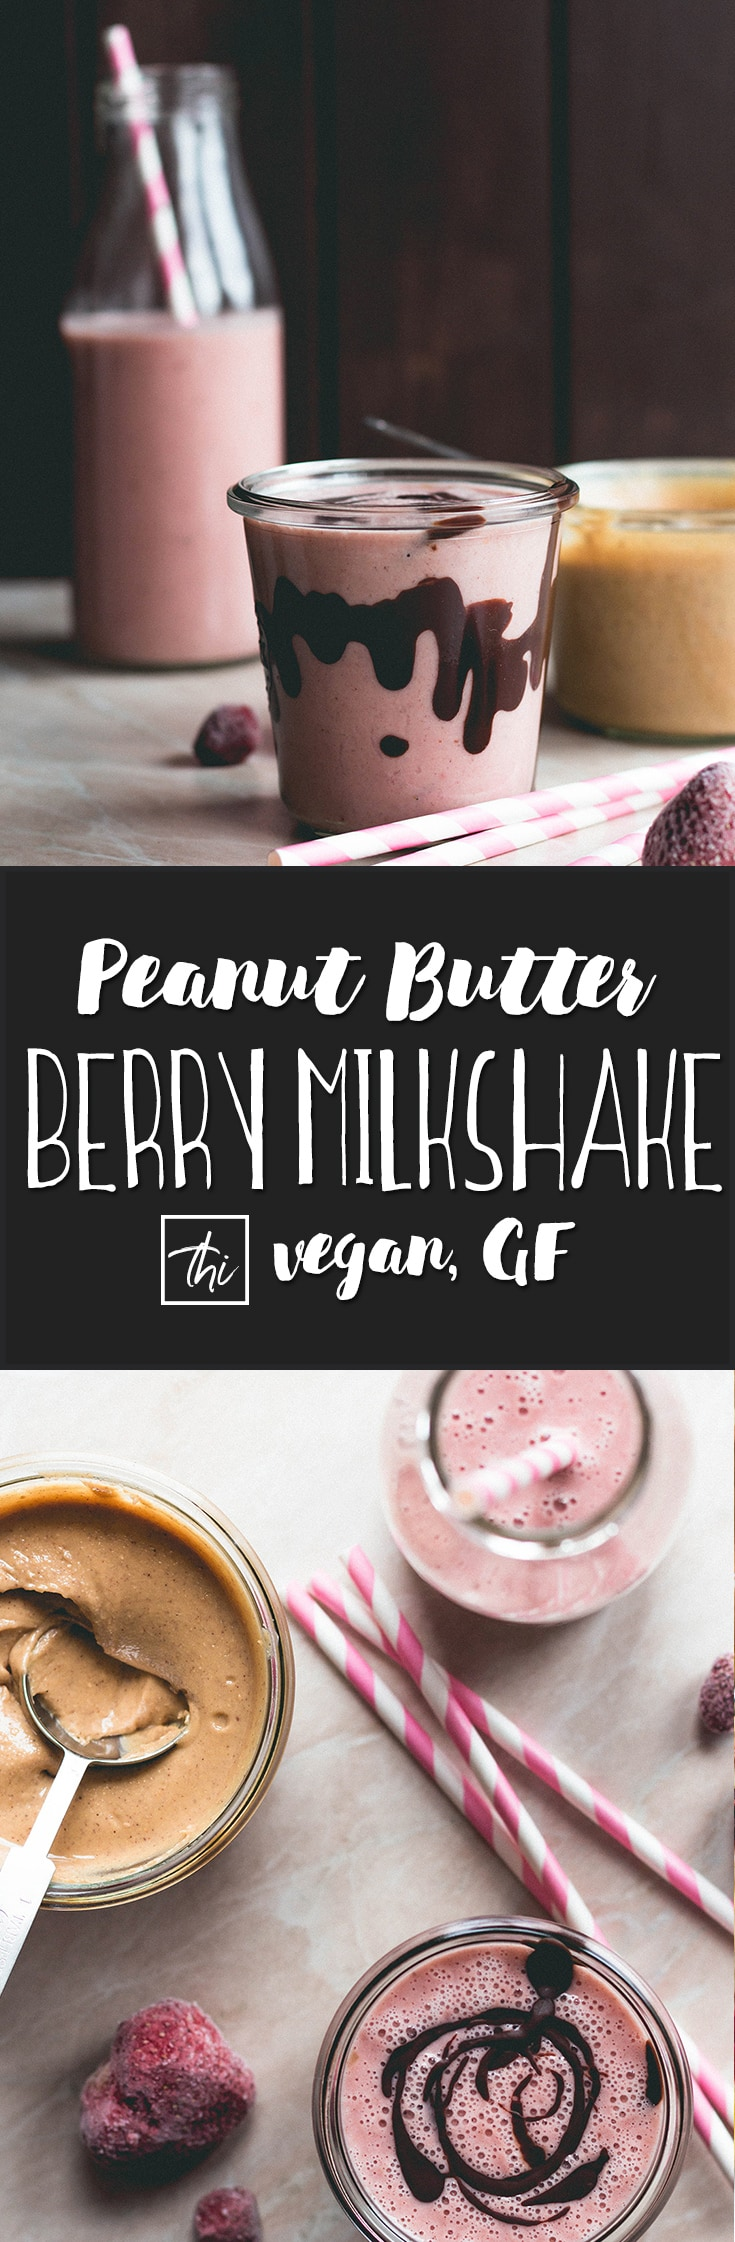 Wild Peanut Butter Strawberry Milkshake (vegan, GF) - delicious almond strawberry & raspberry milkshake made with roasted wild peanut butter. | thehealthfulideas.com